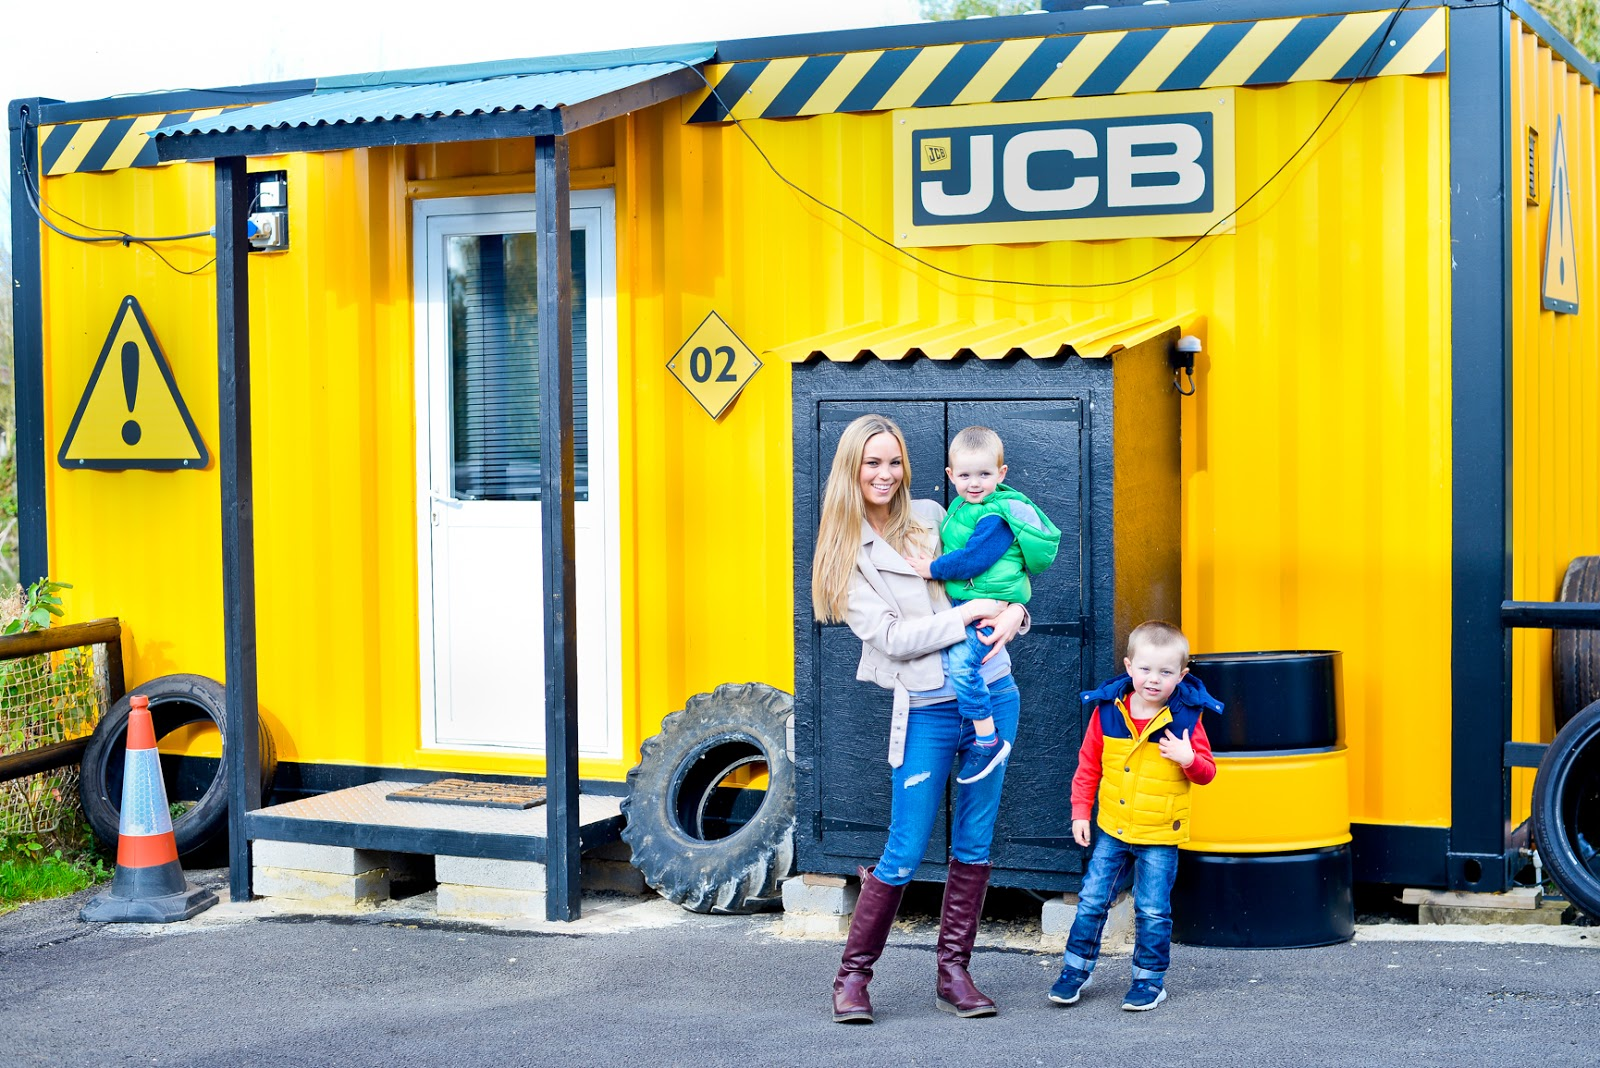 gullivers land, gullivers land milton keynes, gullivers land jcb cabins, gullivers land dinosaur and farm park, jcb accomodation